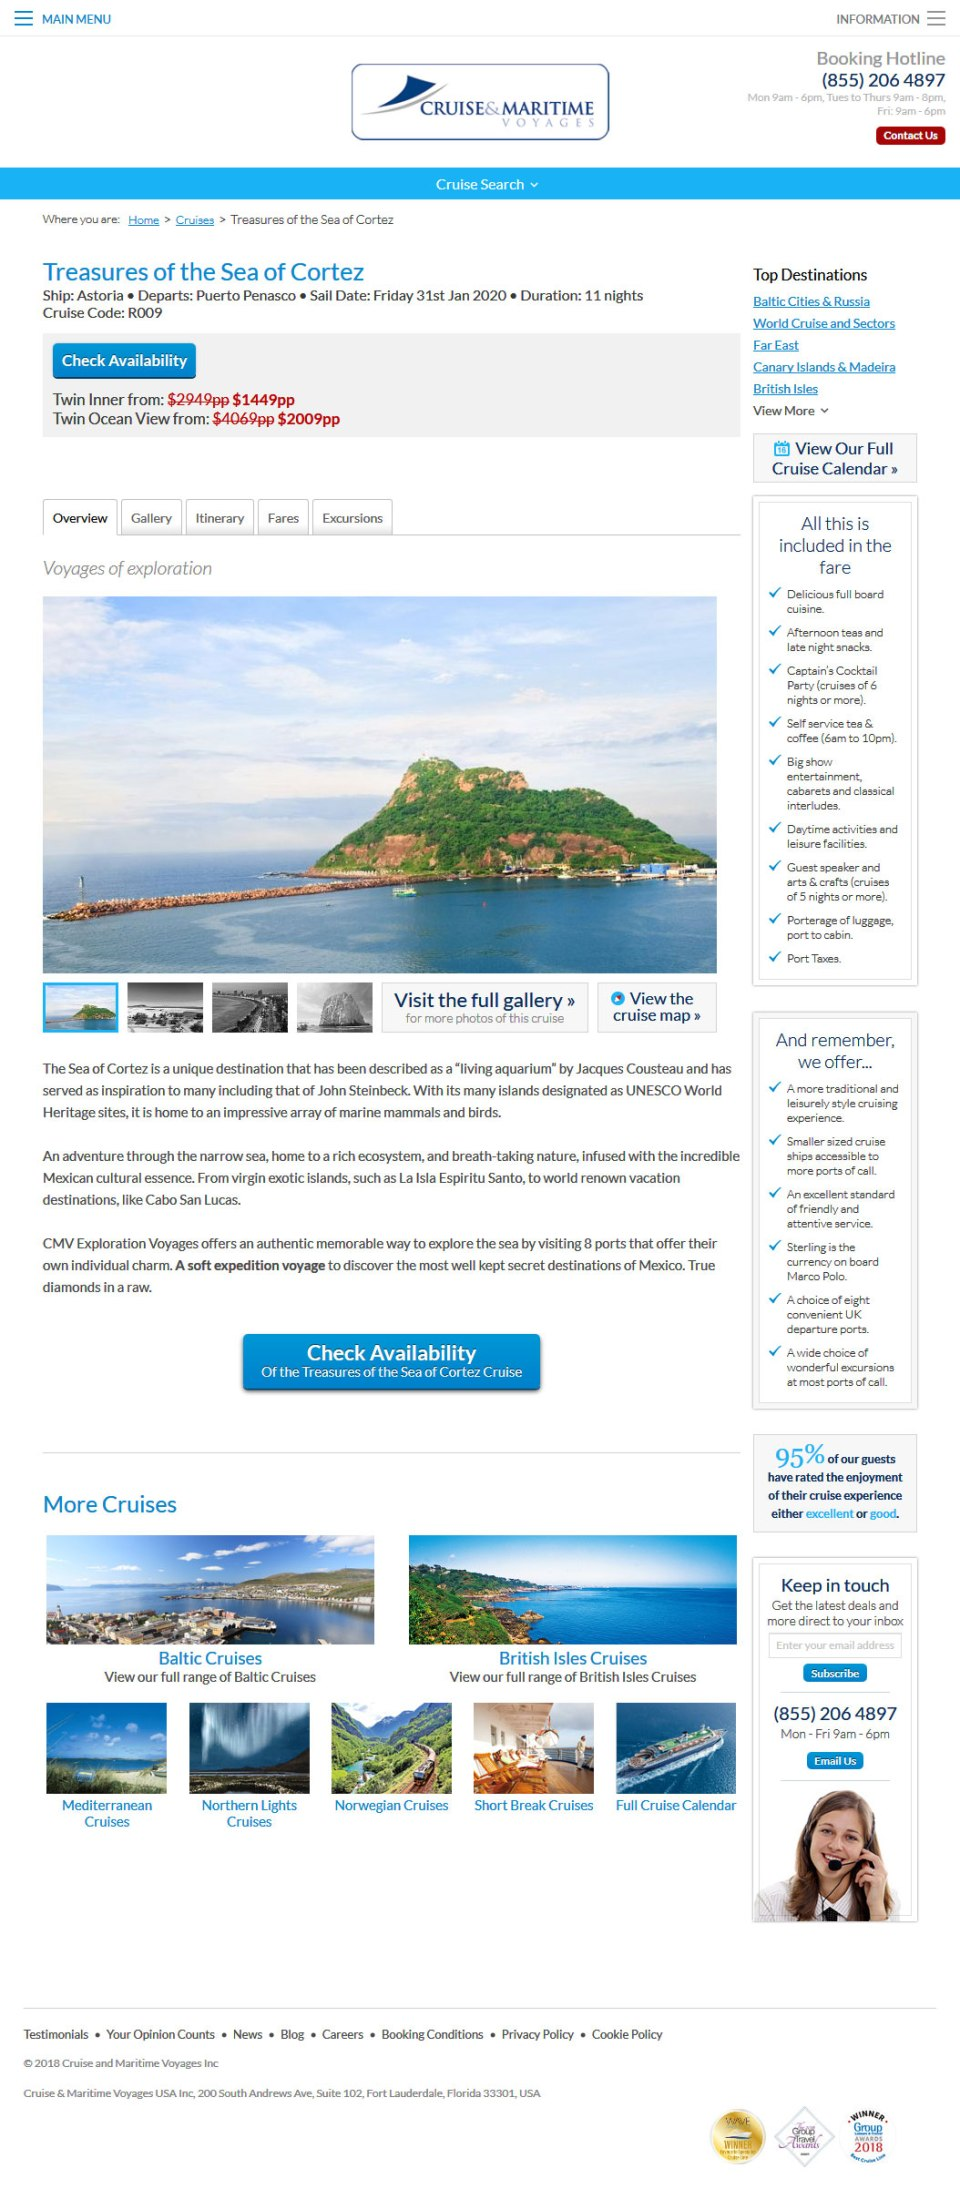 Cruise & Maritime Voyages in Rocky Point Mexico (Puerto Penasco) January 31, 2020. Click the Picture to visit Cruise & Maritime Voyages Site.